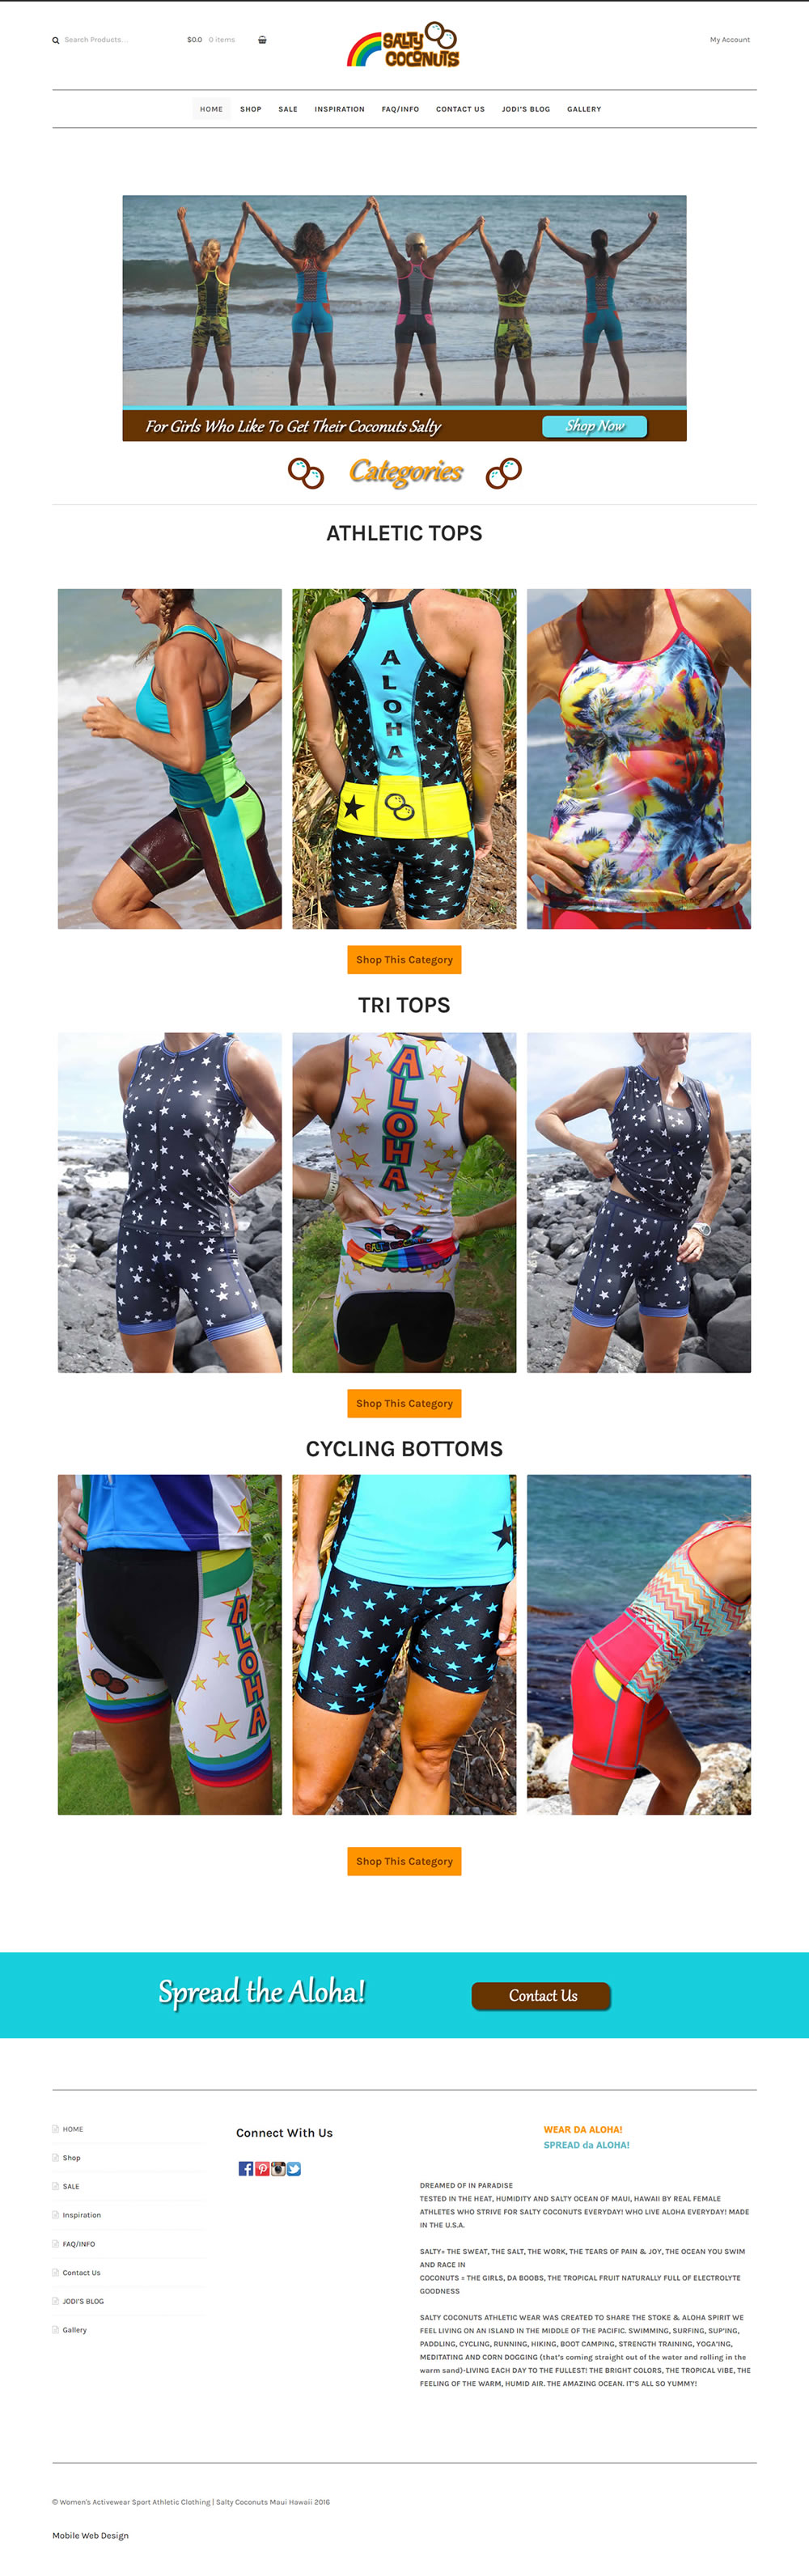 maui womens clothing e commerce by kinetic knowledge